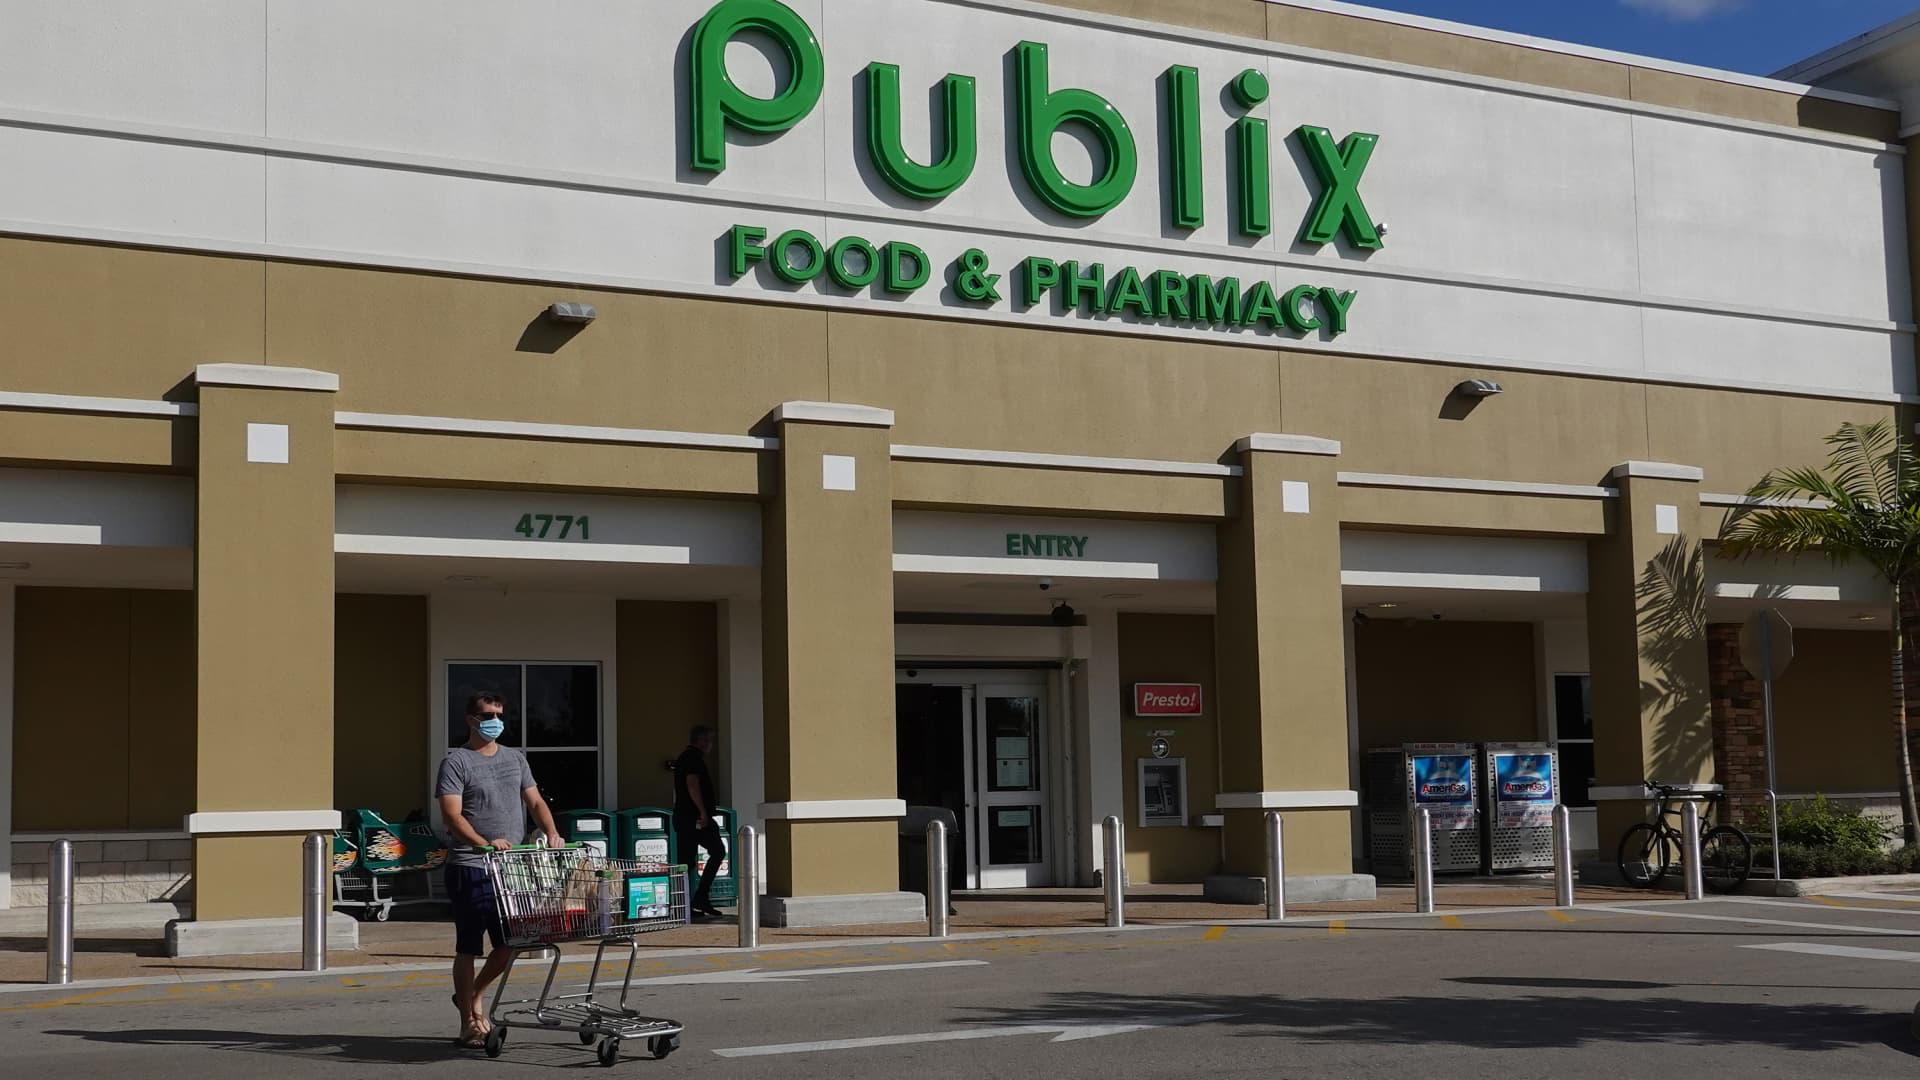 A Publix Food & Pharmacy store where COVID-19 vaccinations were being administered on January 29, 2021 in Delray Beach, Florida.